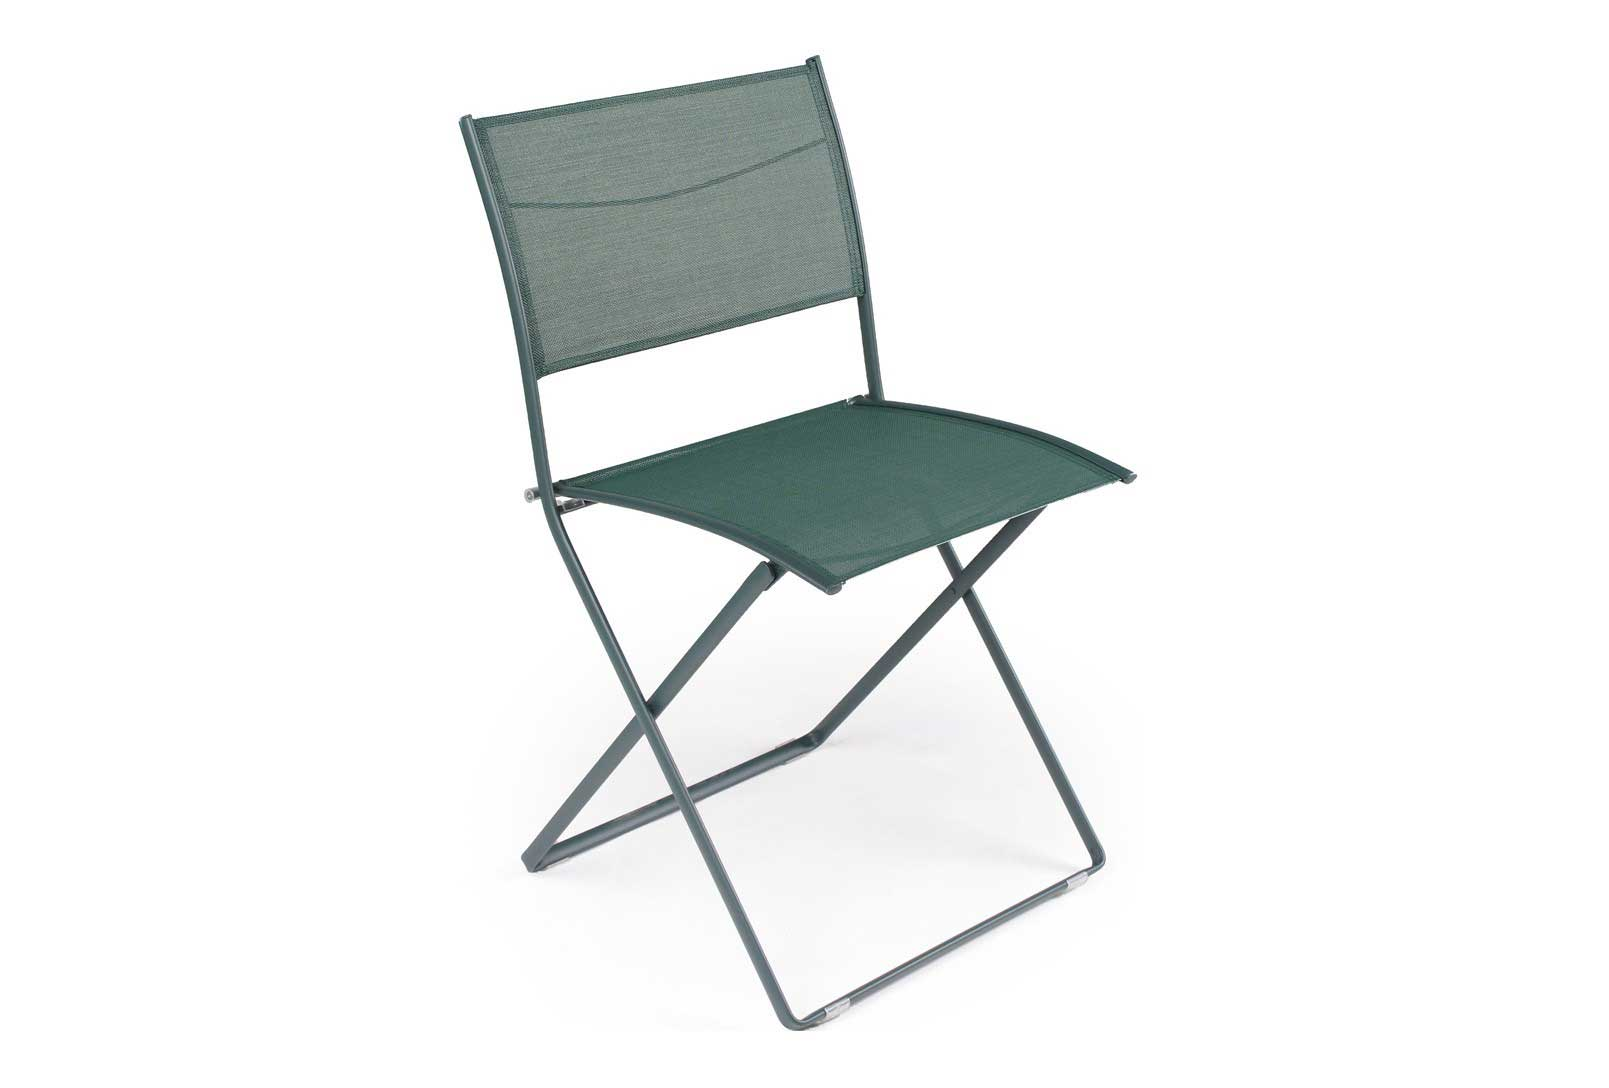 Chairs For Every Purpose Ross Stores Recalls Folding  : Plein Air Patio Mesh Folding Chair from chairs6661.tumblr.com size 1609 x 1088 jpeg 42kB